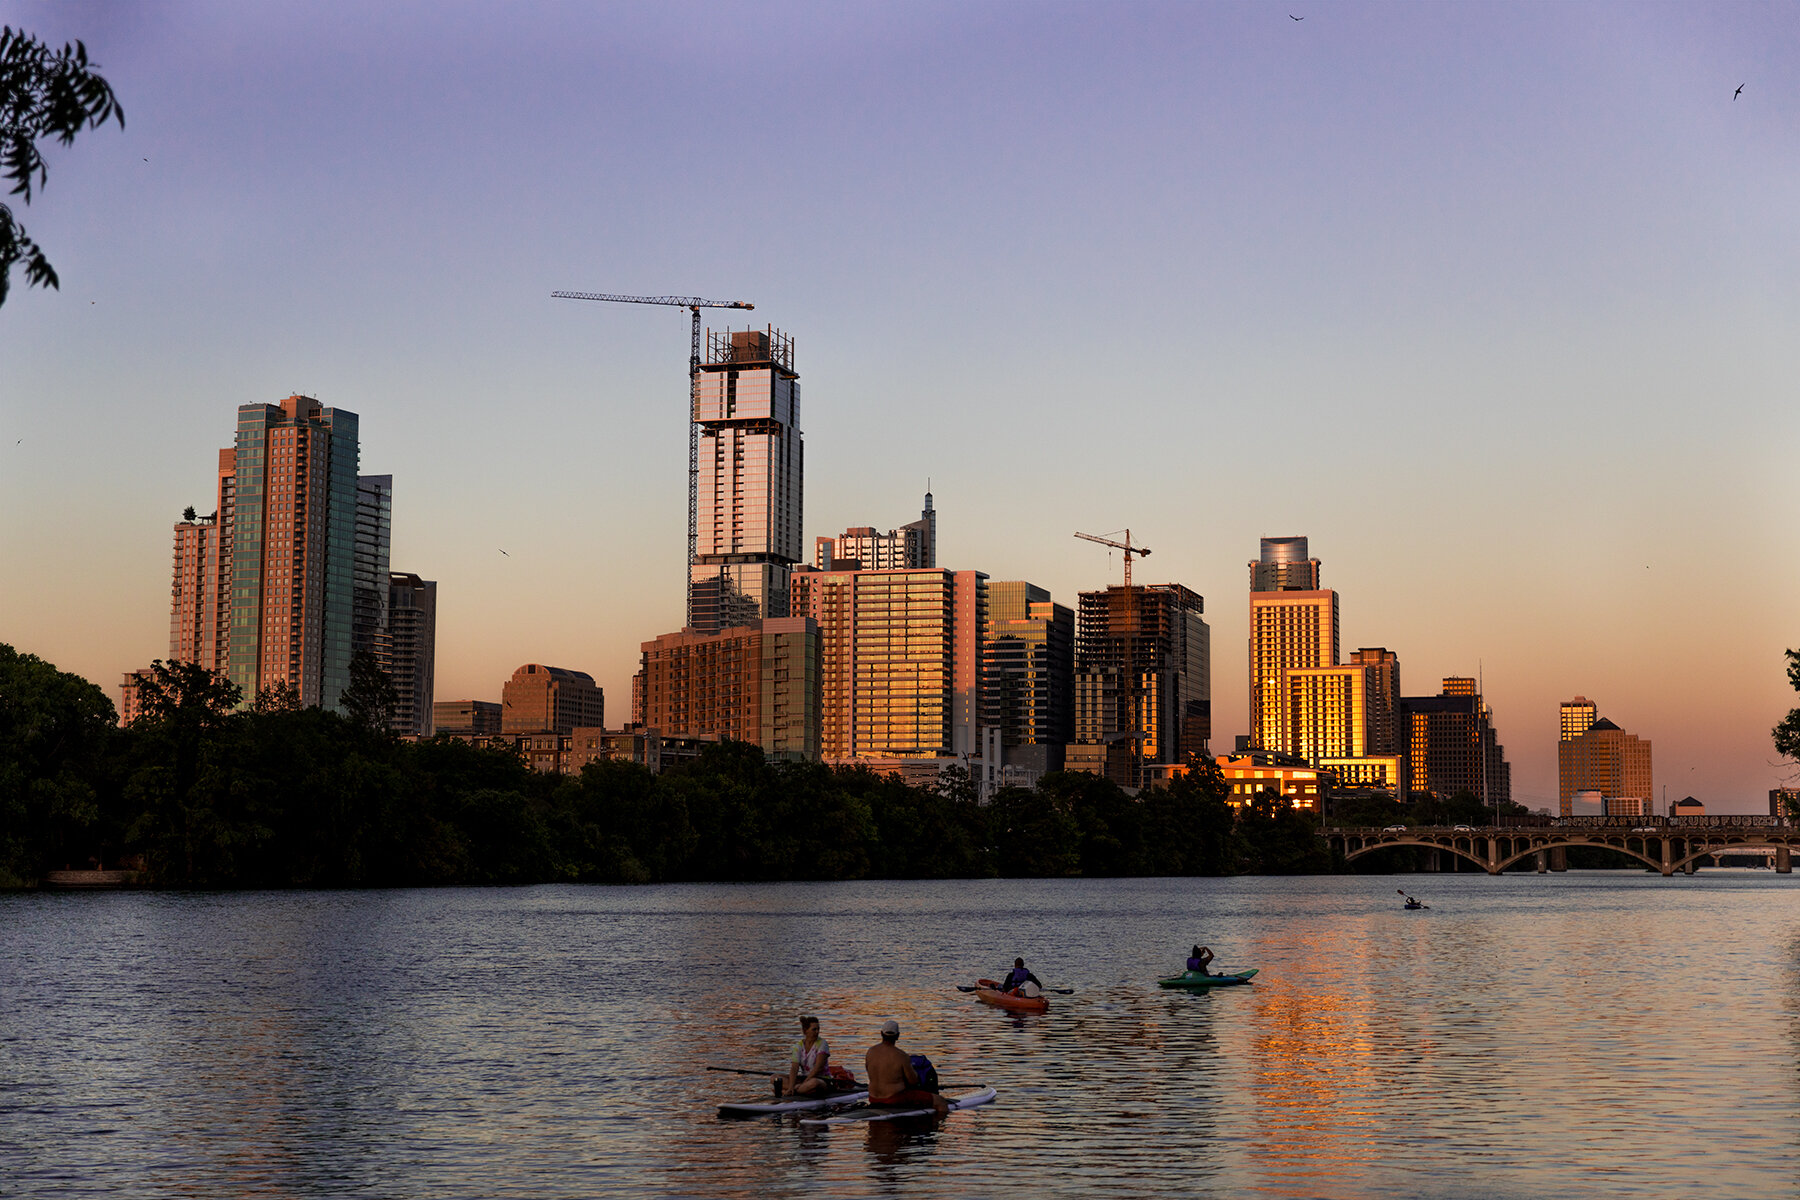 Austin sunset at Fall by @shelbybellaphotography